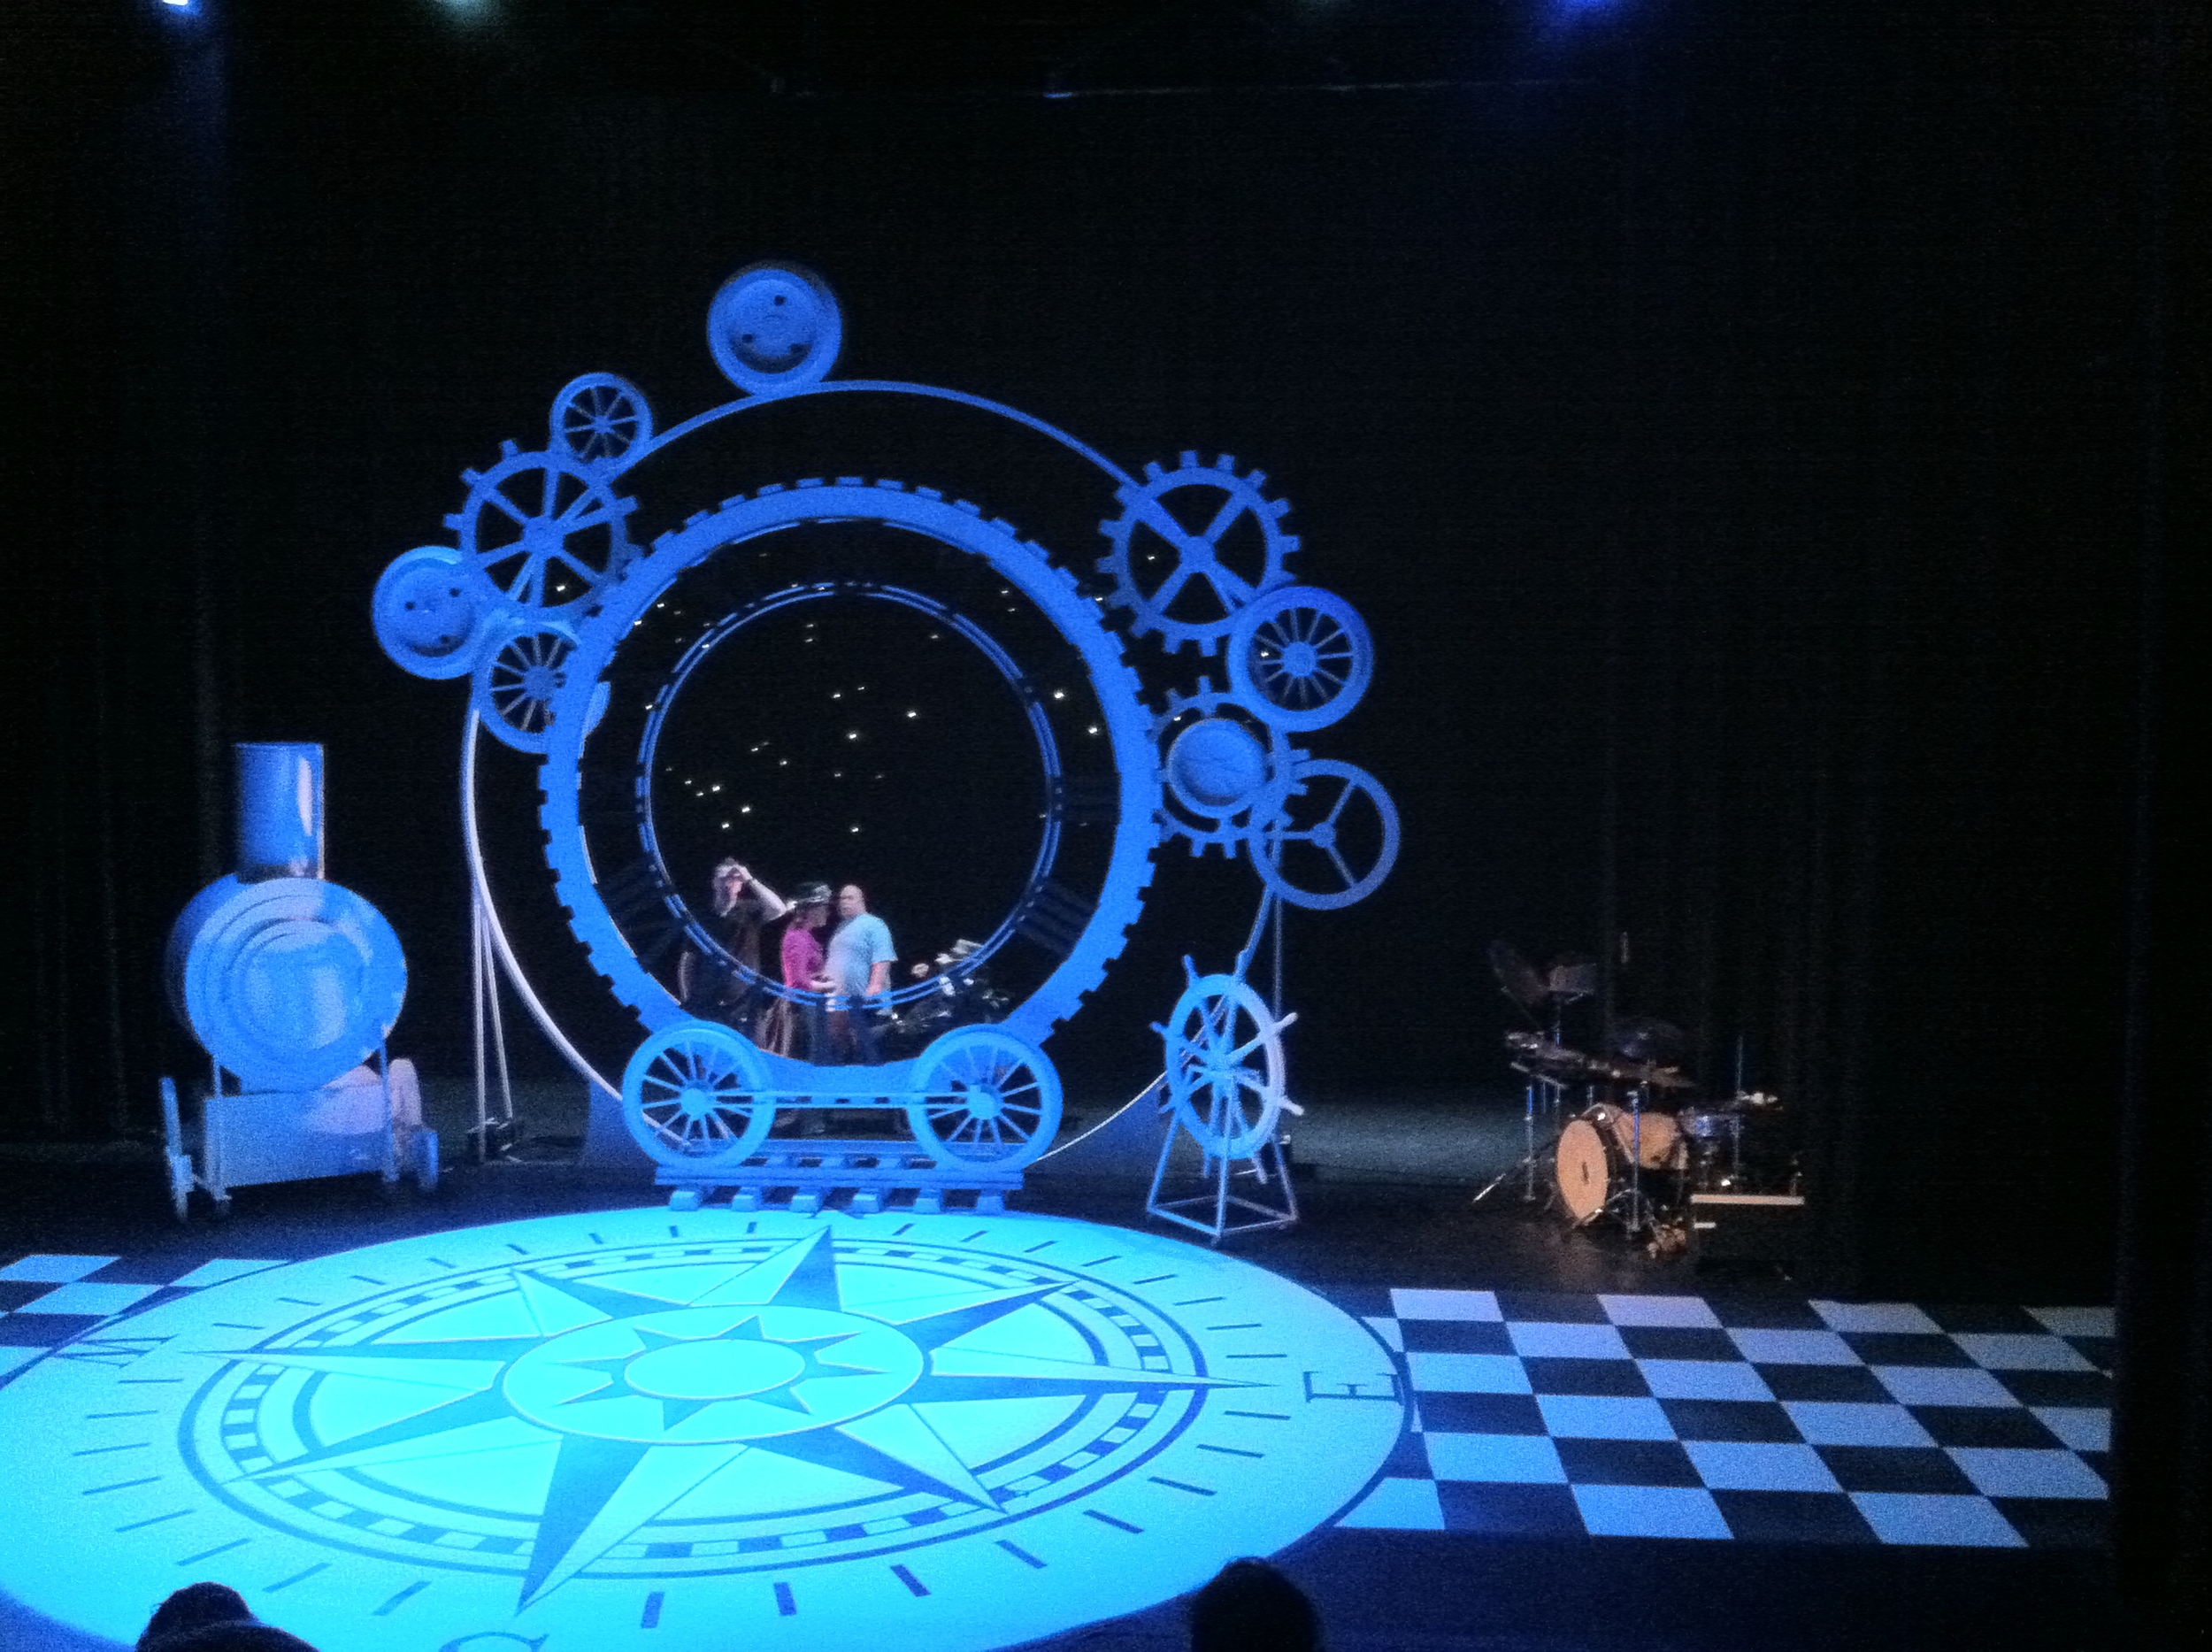 Performing to original music and sound design for Around the World in 80 Days by Lung Has Theatre Company in 2011 at The Traverse Theatre Edinburgh